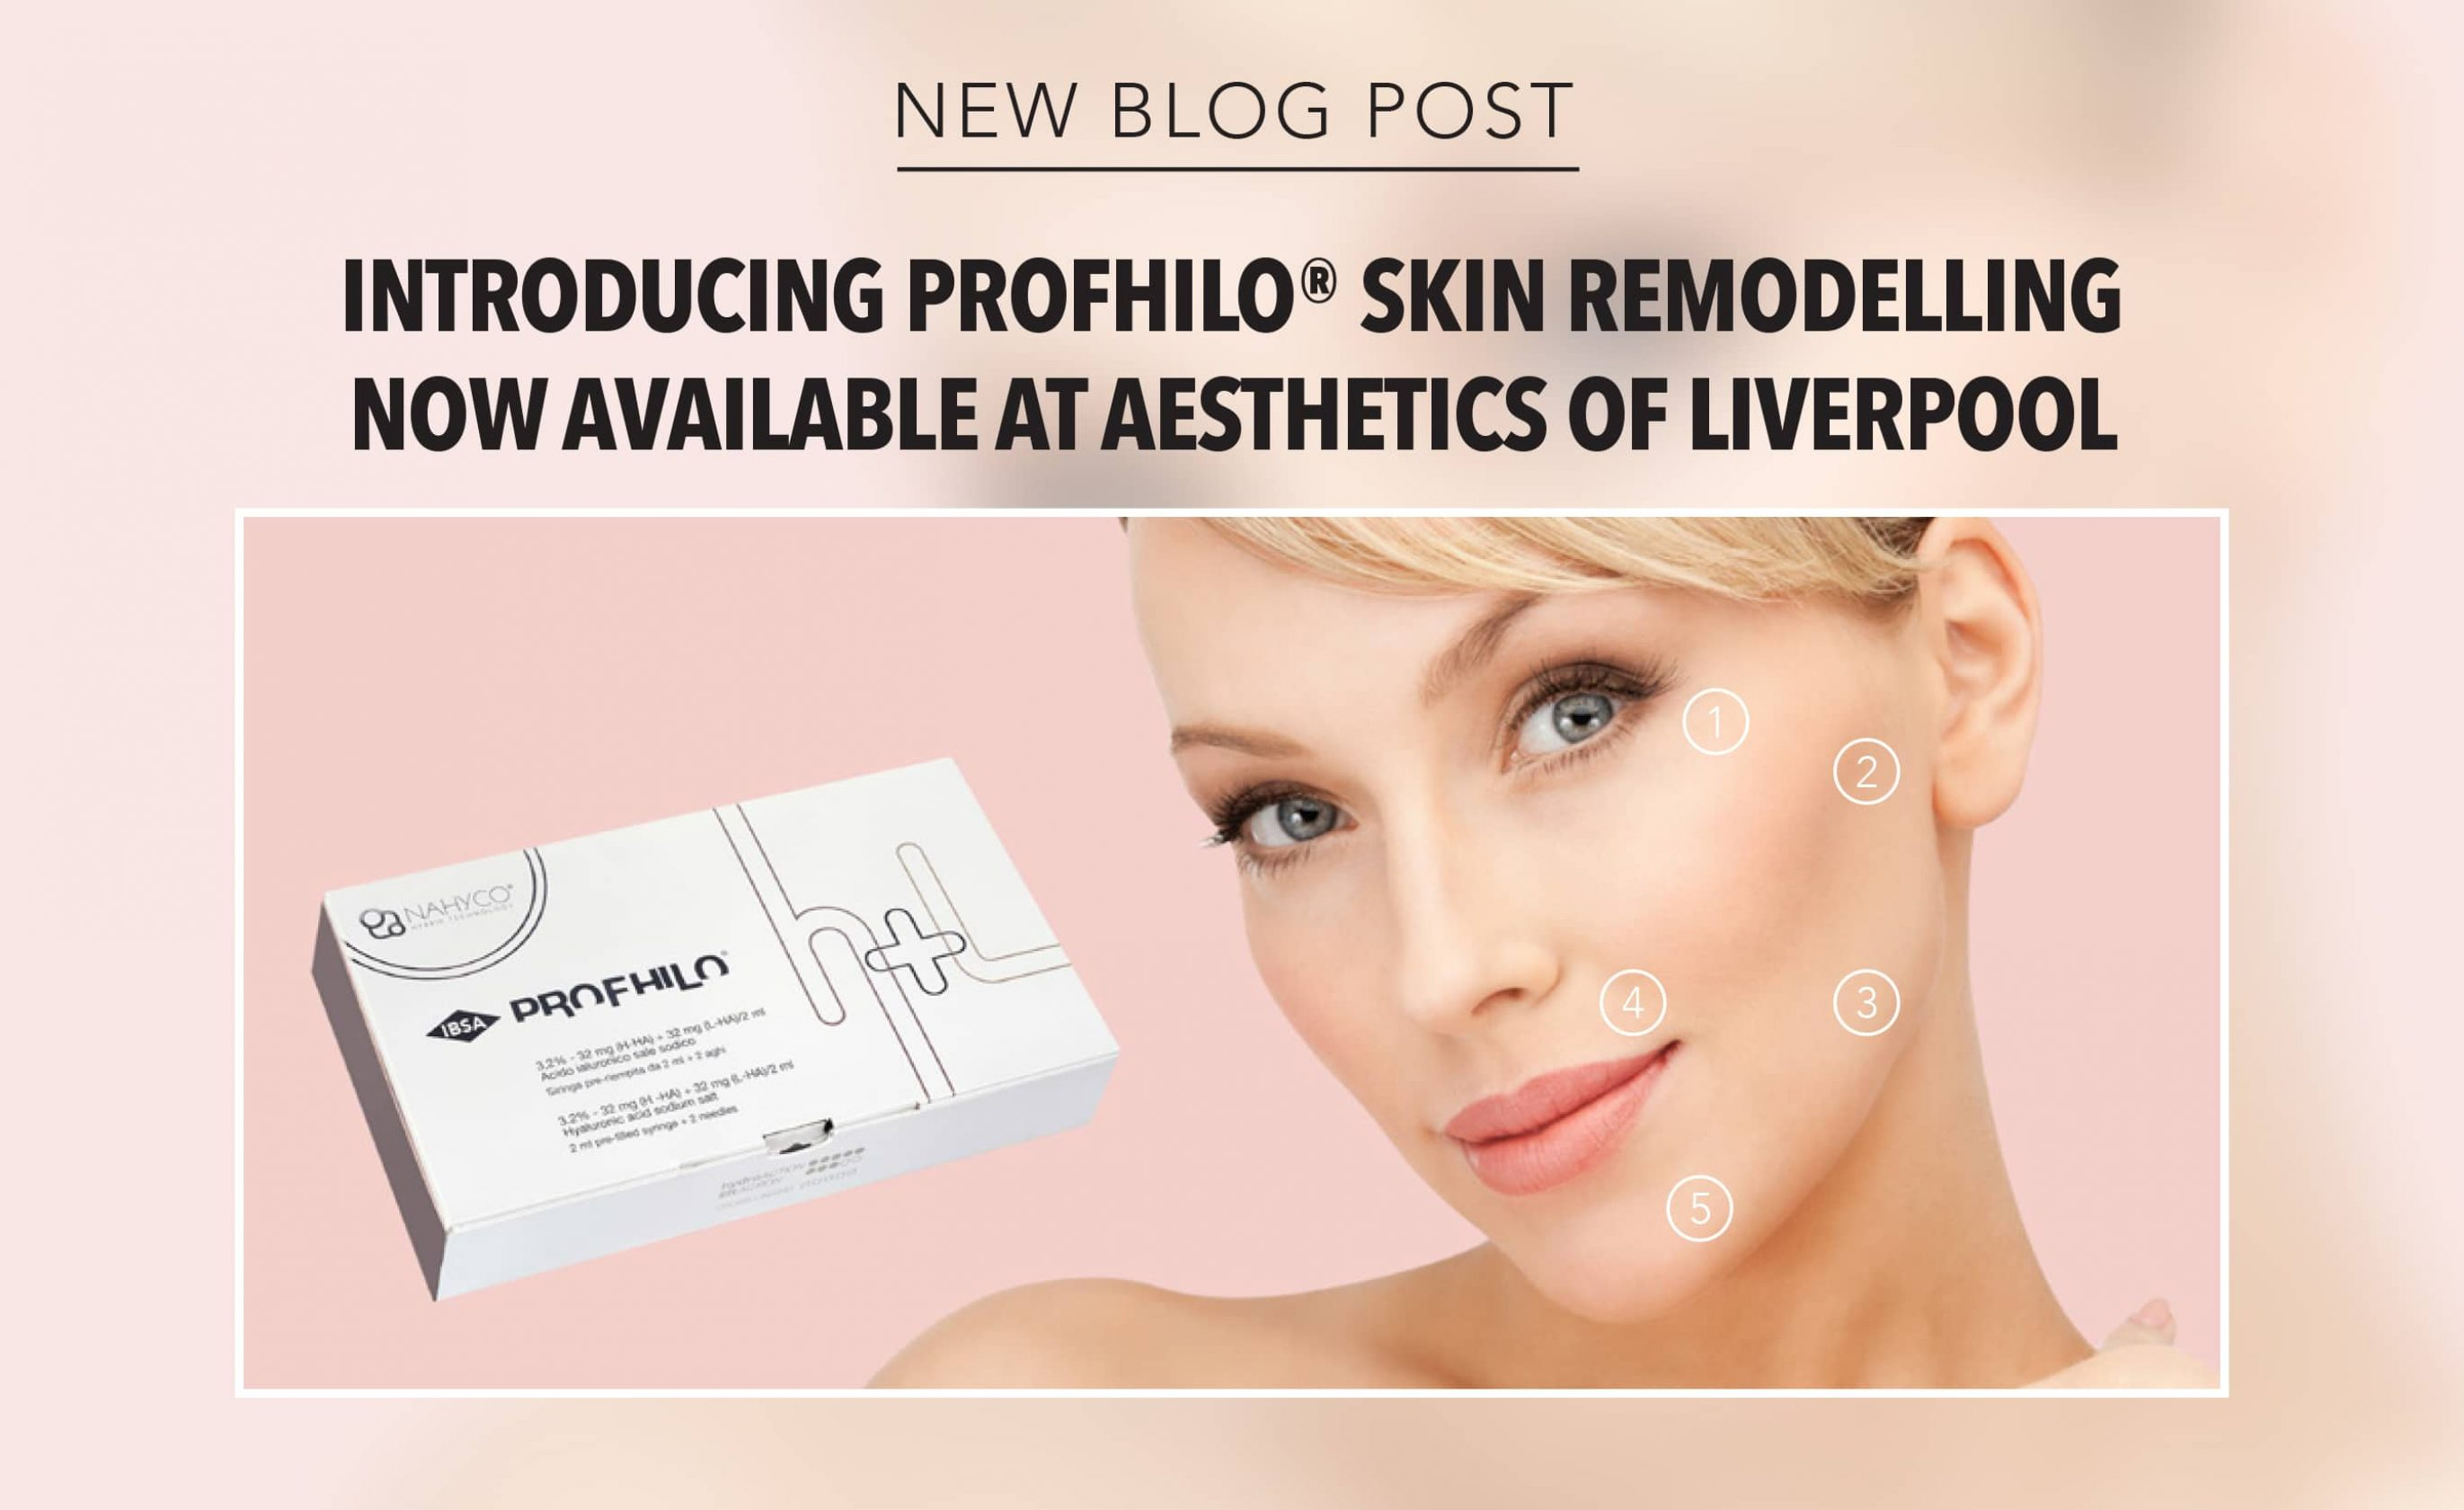 Introducing Profhilo Skin Remodelling